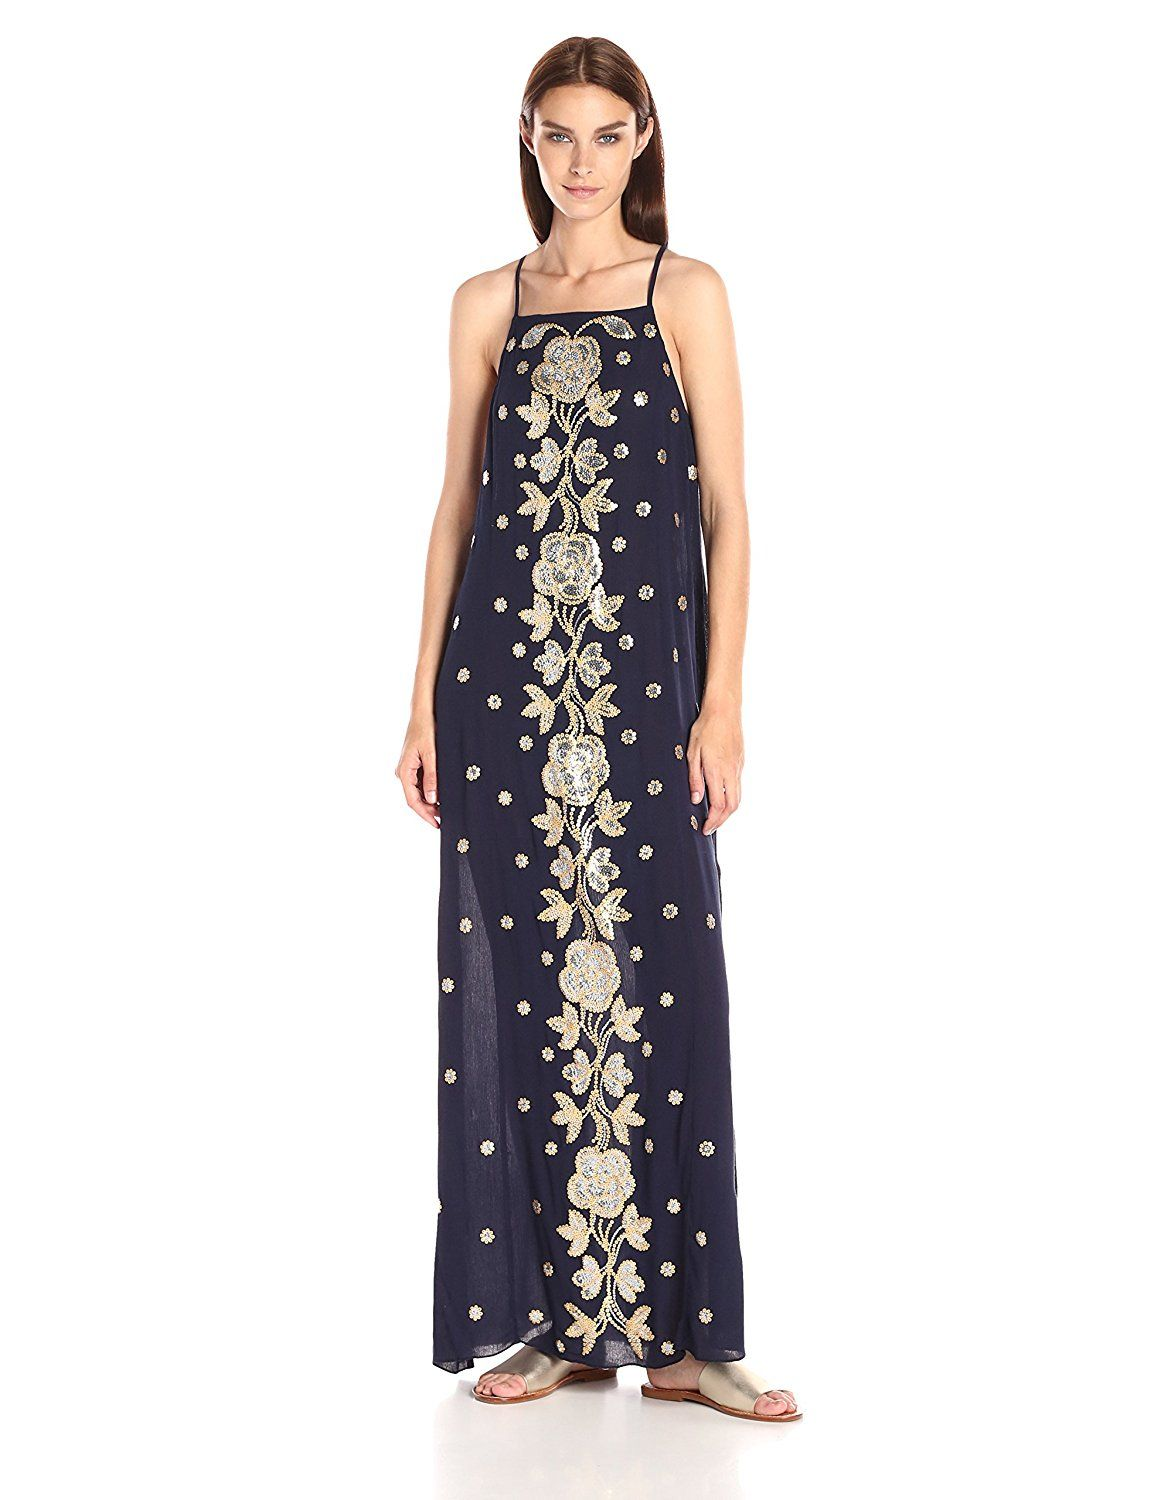 Ark and Co Women s Sequins Embroidered Shift Dress   Check out this great  image   Women s eb30d5cbac68